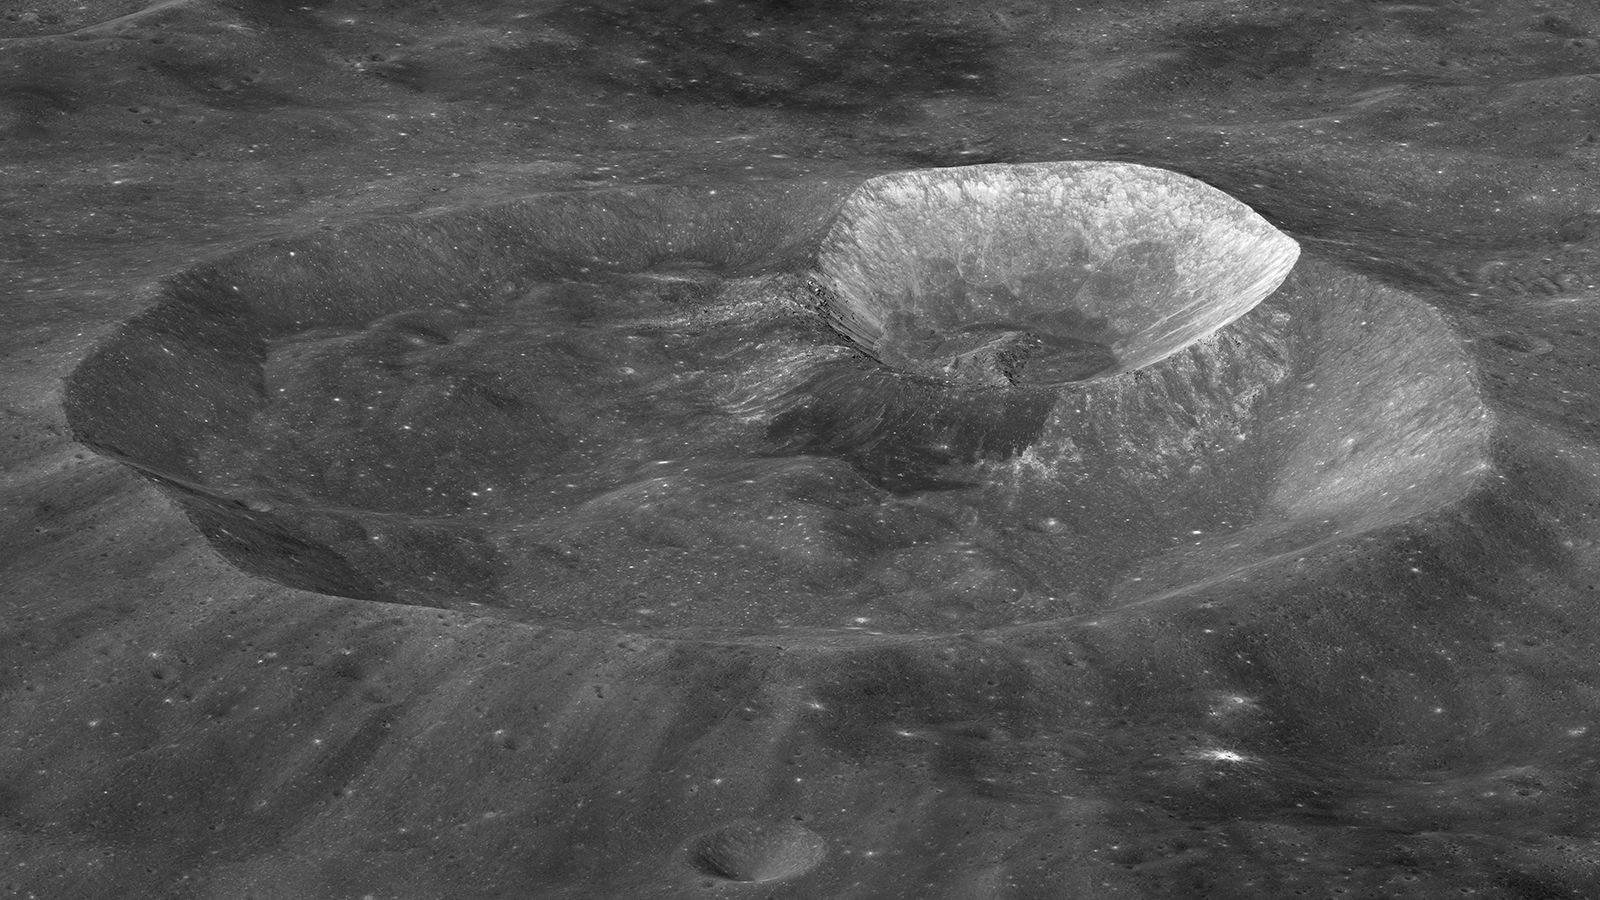 Double impact crater on the Moon.